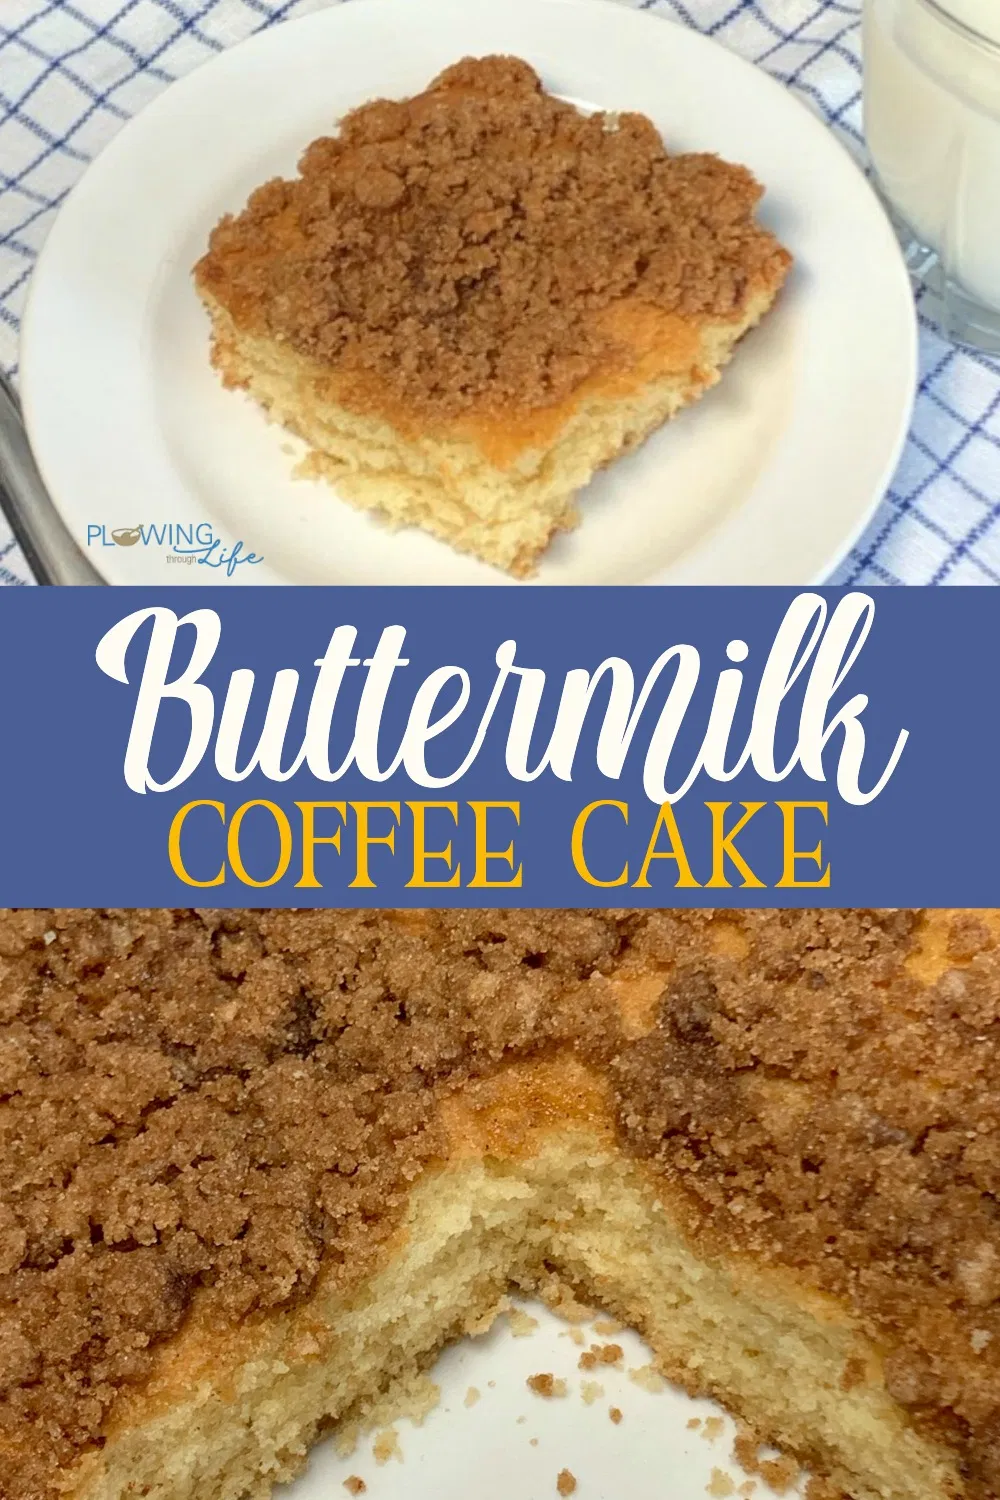 This Rich Buttermilk Cake With A Sweet Brown Sugar Streusel Topping Is So Easy To Make In A 9 13 In 2020 Buttermilk Coffee Cake Buttermilk Recipes Coffee Cake Recipes